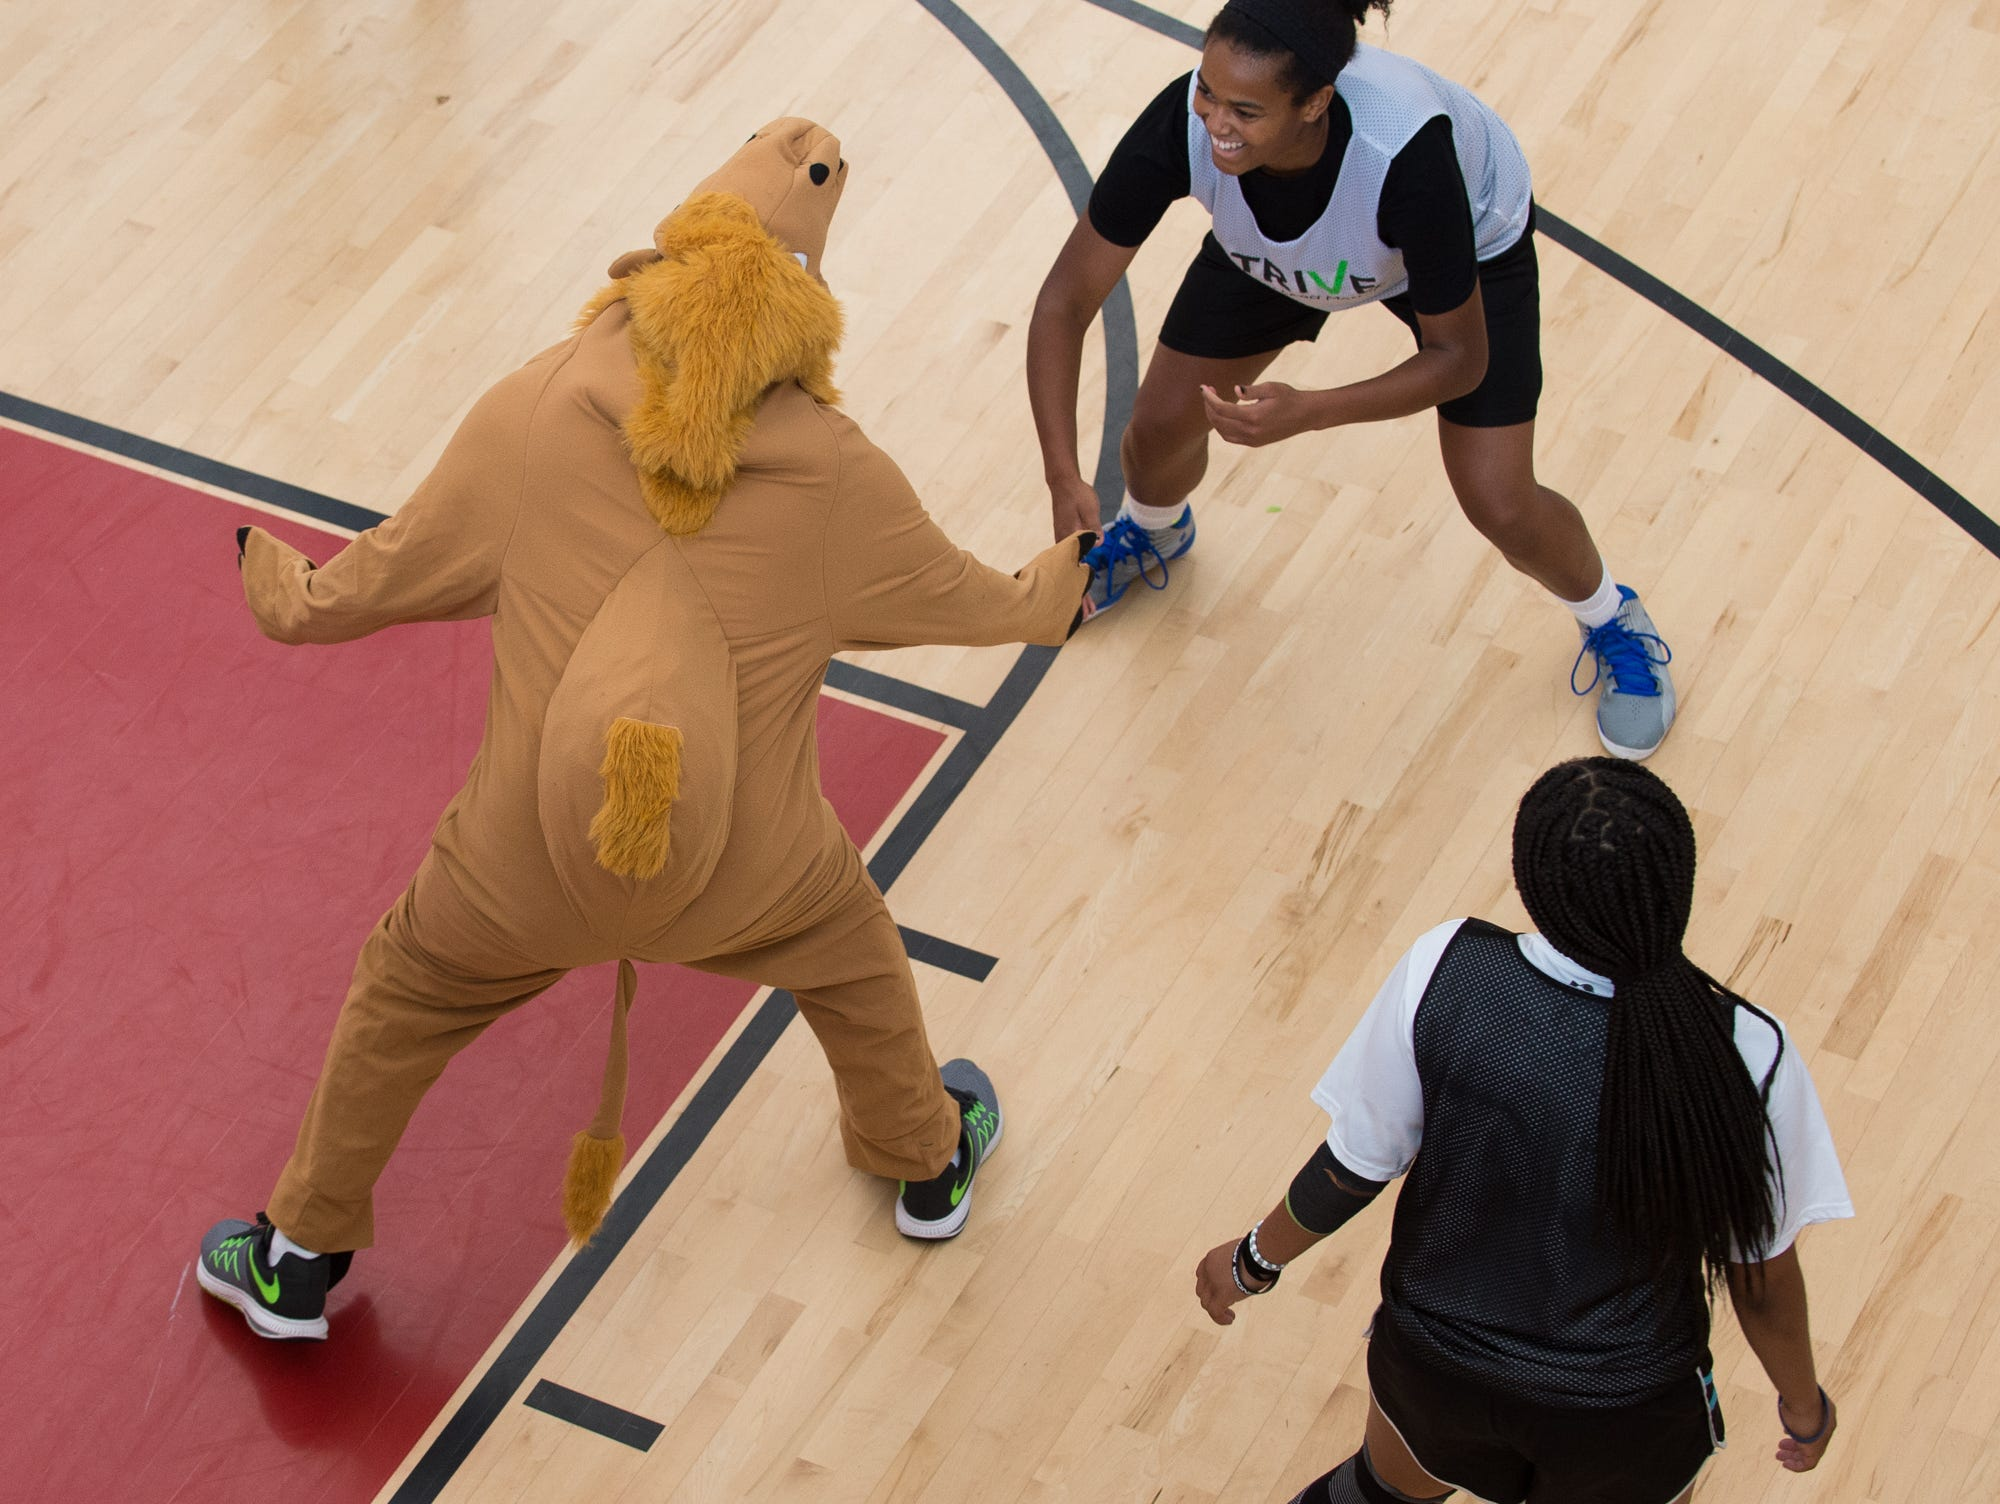 Jeremy Edwards, co-founder of Strive, plays basketball dressed as camel at St. Andrew's School in Middletown, Del,.